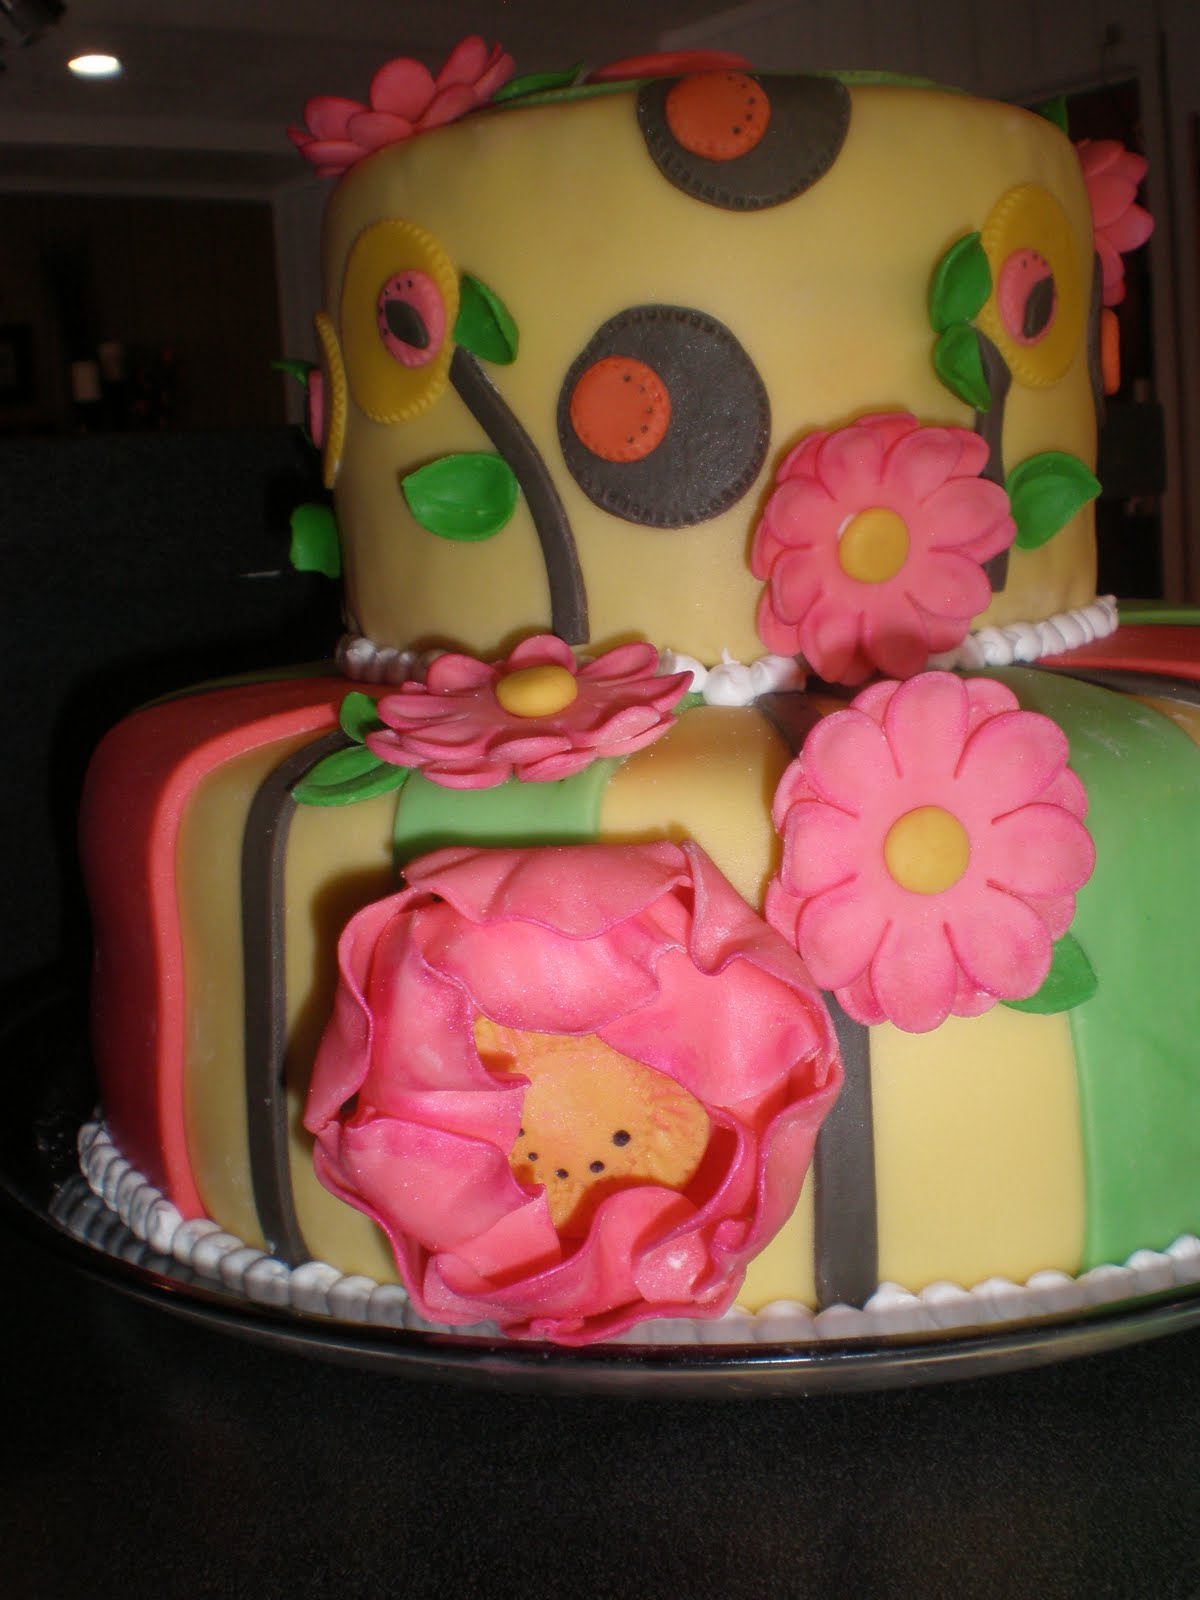 Teenage Girl Cake Images : The Hatch Batch: Teenage girl s birthday cake